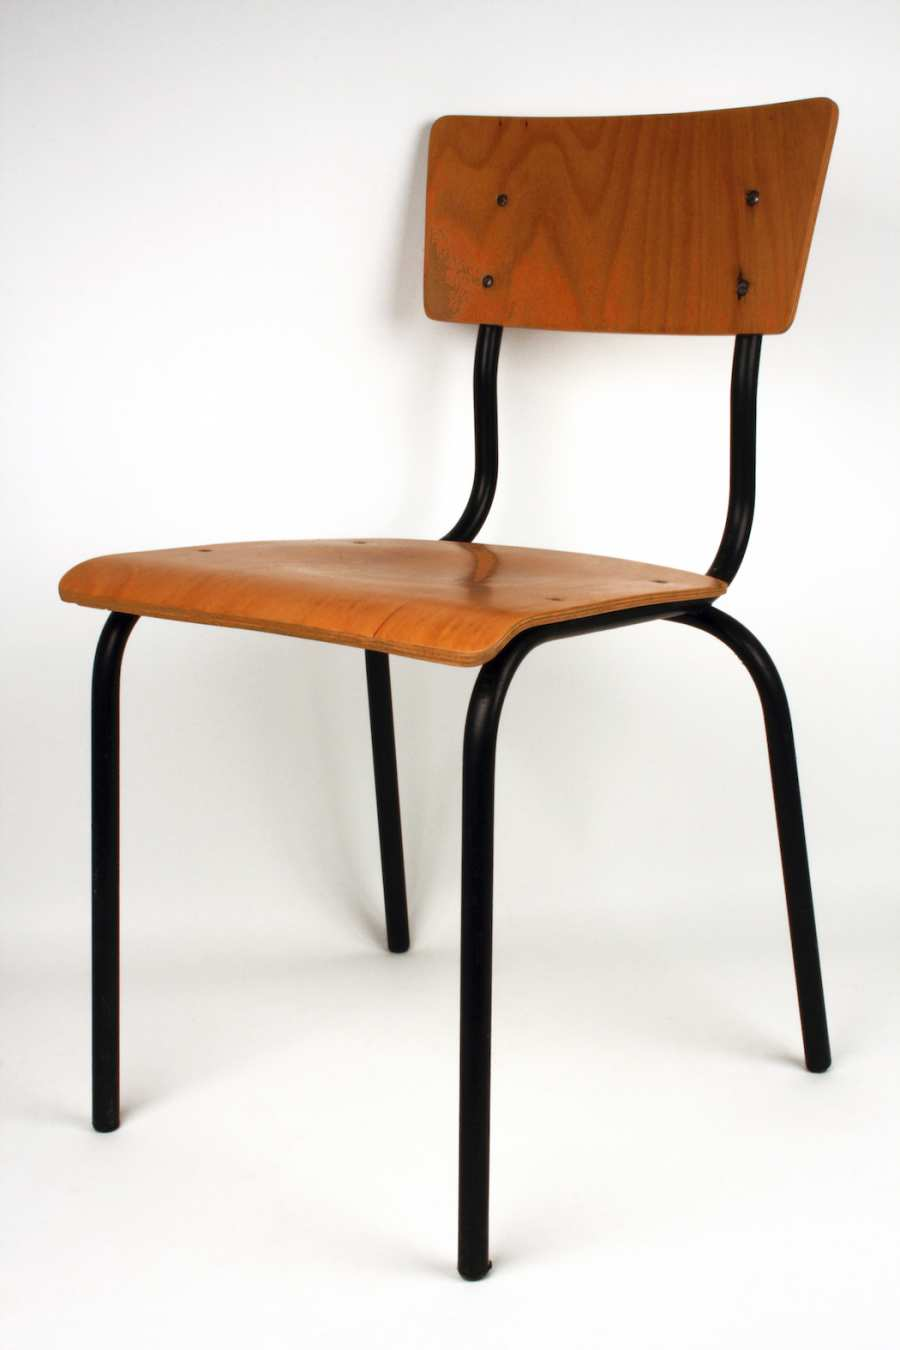 DDR chair model 3101 stacking chair with seat and back in timber